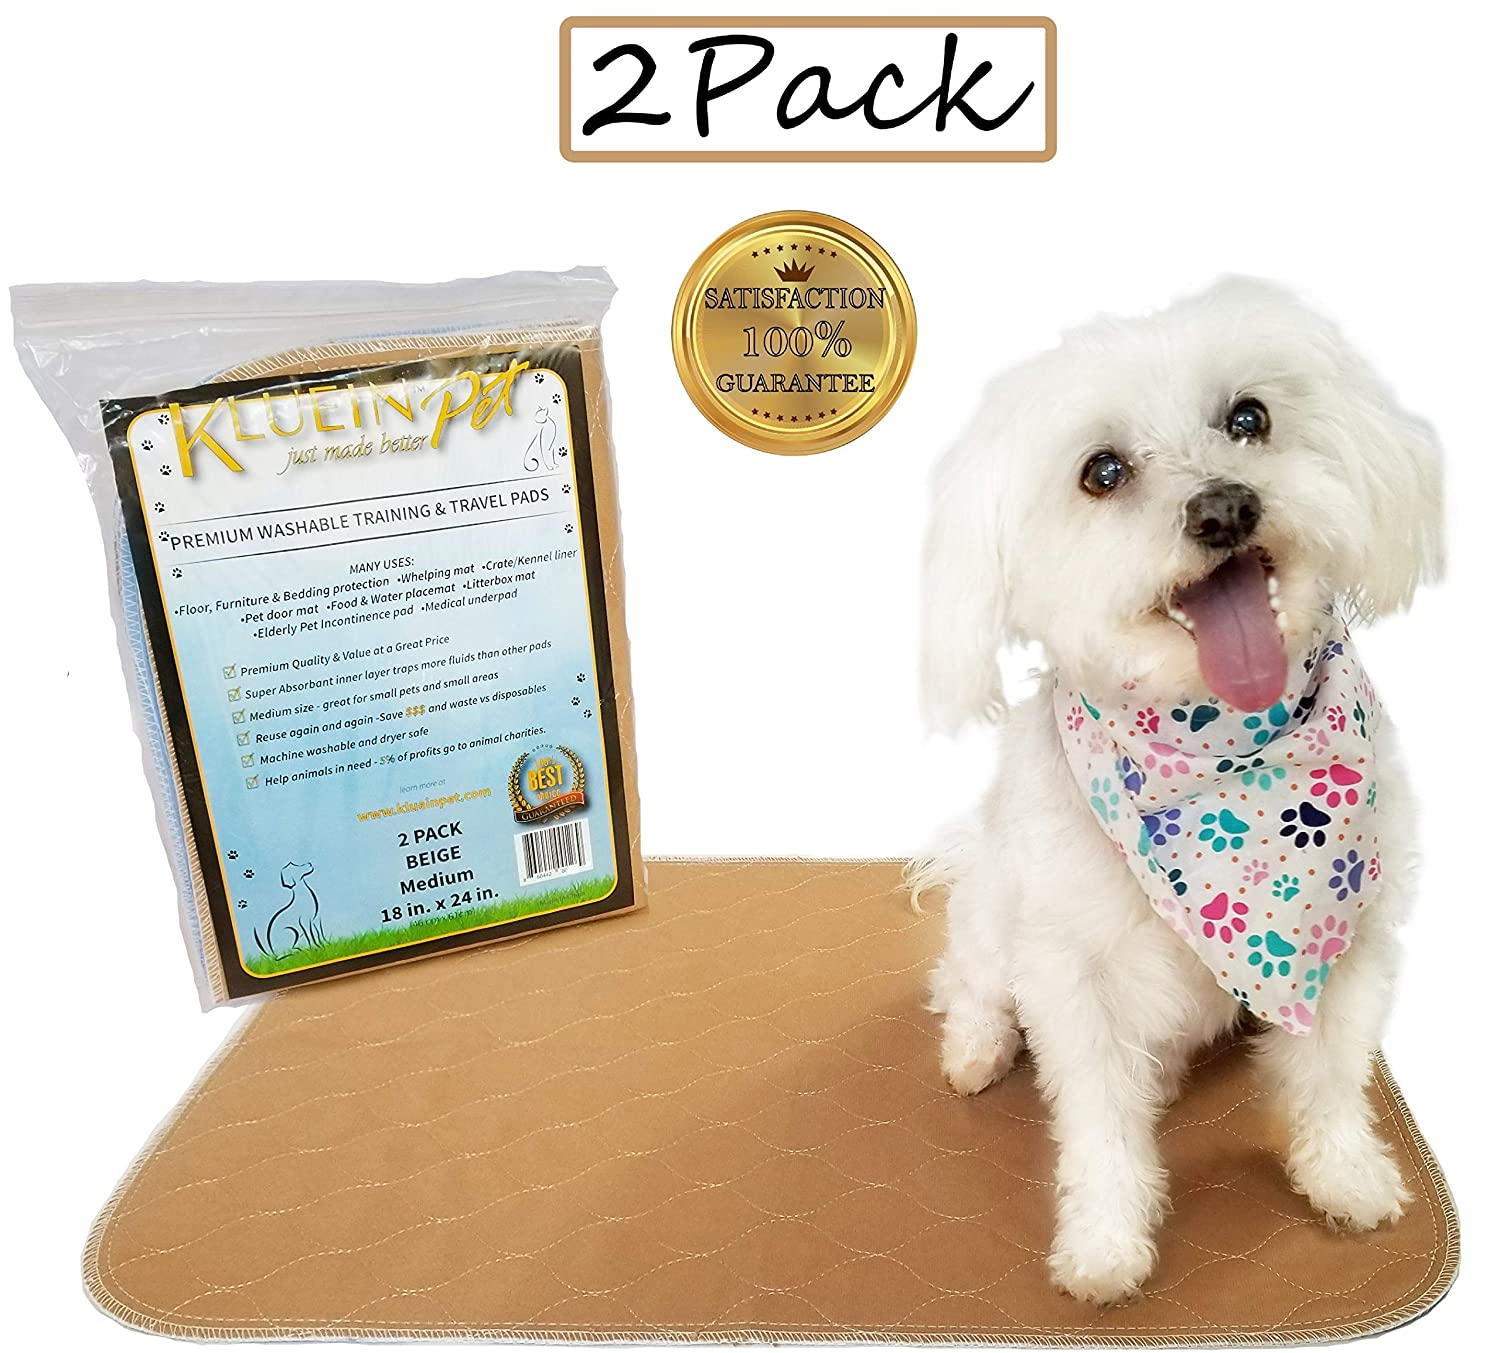 Beige Kluein Pet Washable Dog Pee Pads, Absorbent Waterproof Reusable Puppy Pads, Beige 2-Pack 18 x 24 inch, Pet Food Mat, Dog Crate Mat, Cat Mat, Potty Training, Travel